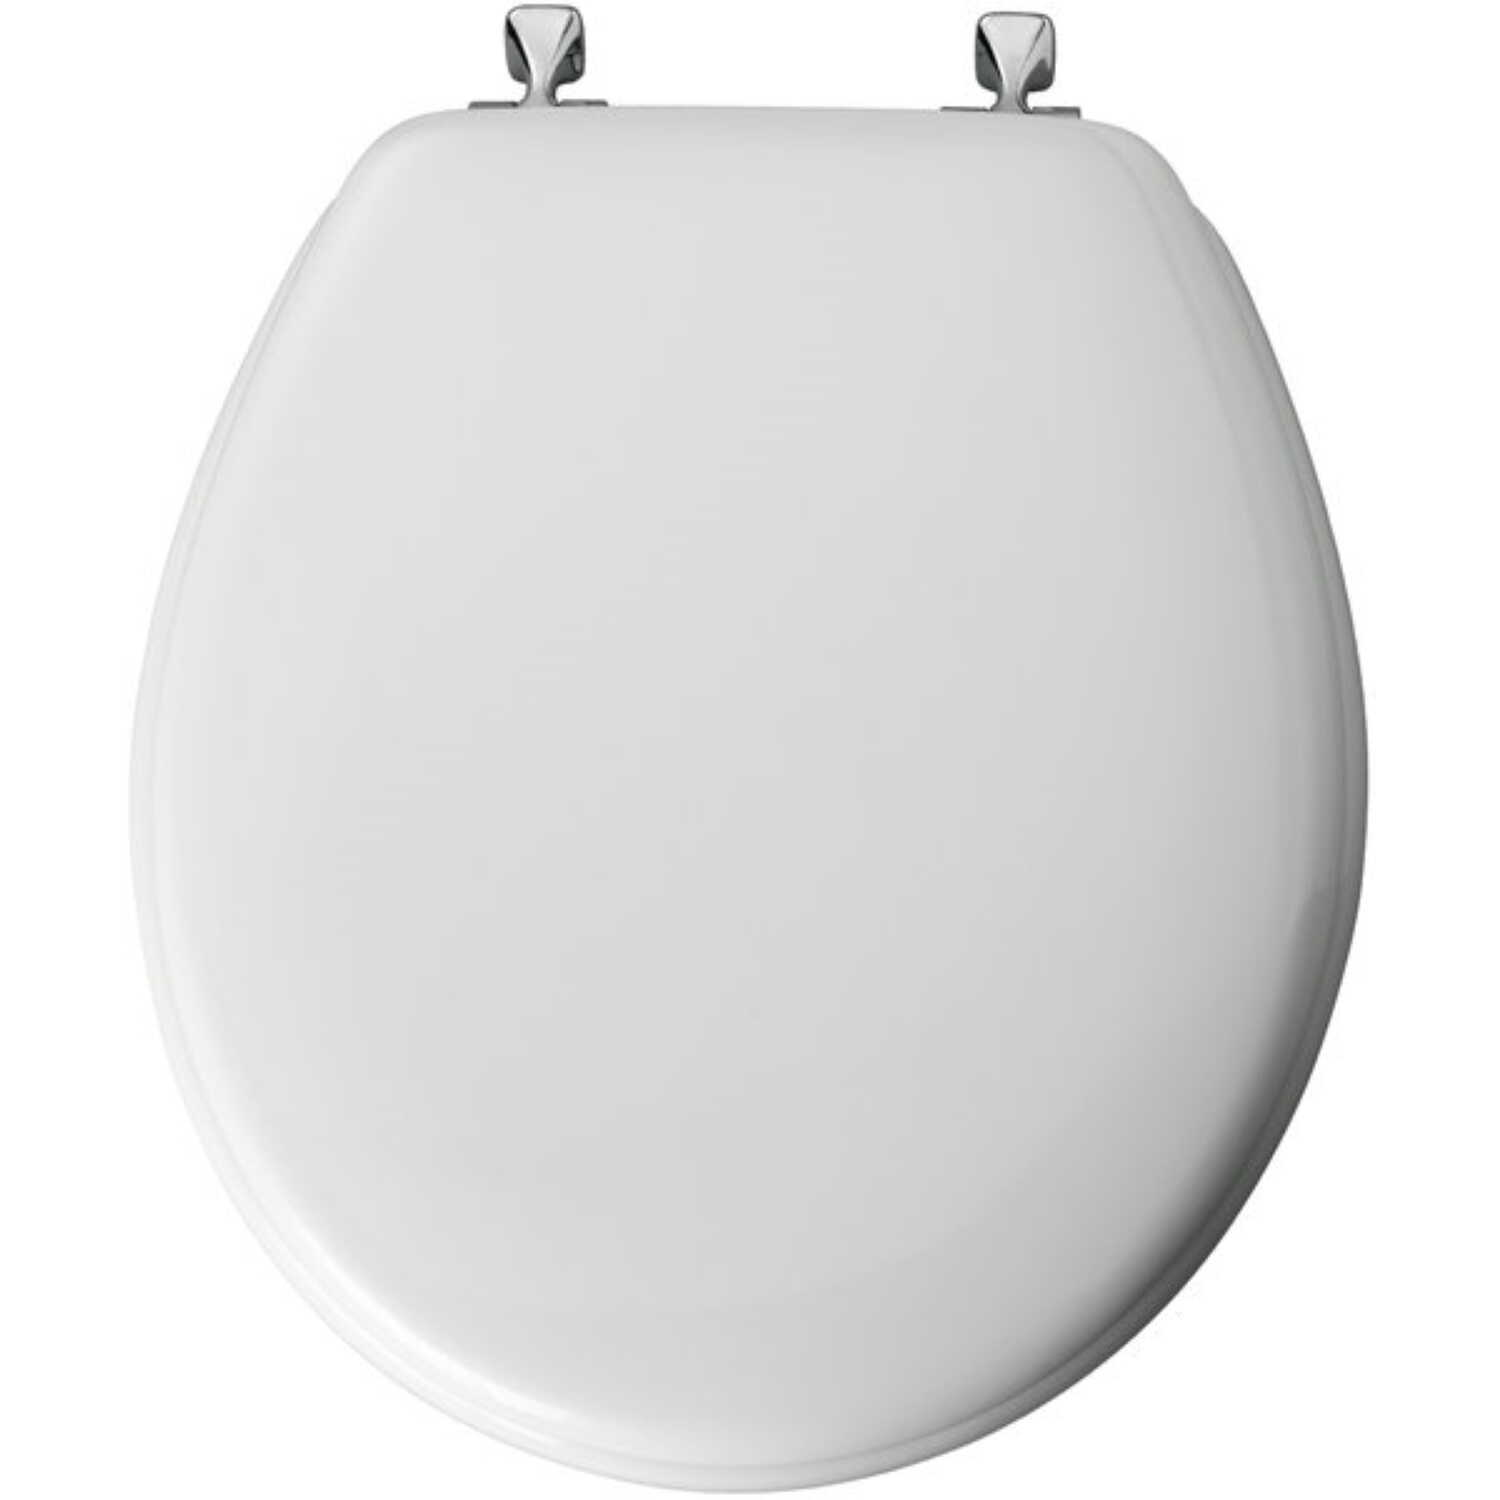 Mayfair Round White Molded Wood Toilet Seat Ace Hardware